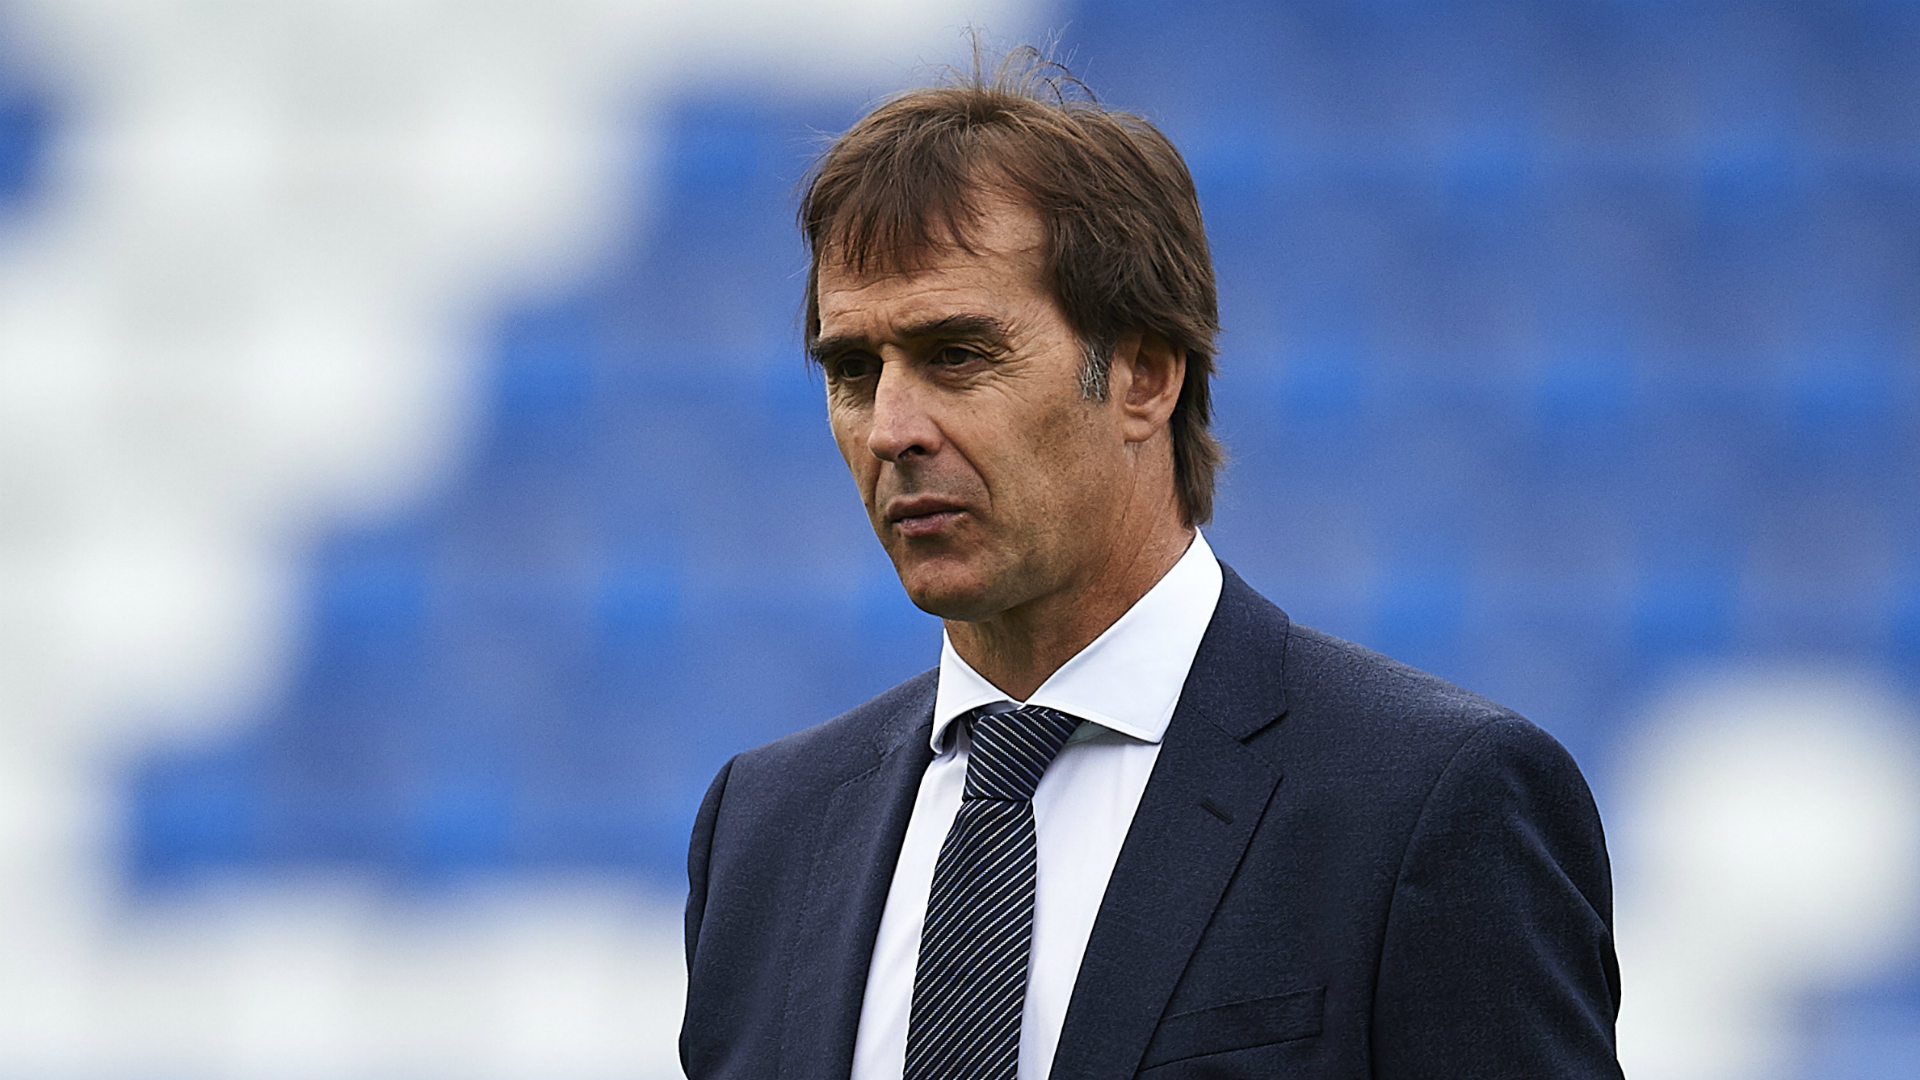 Real Madrid could sack Lopetegui if results don't improve, says Essien